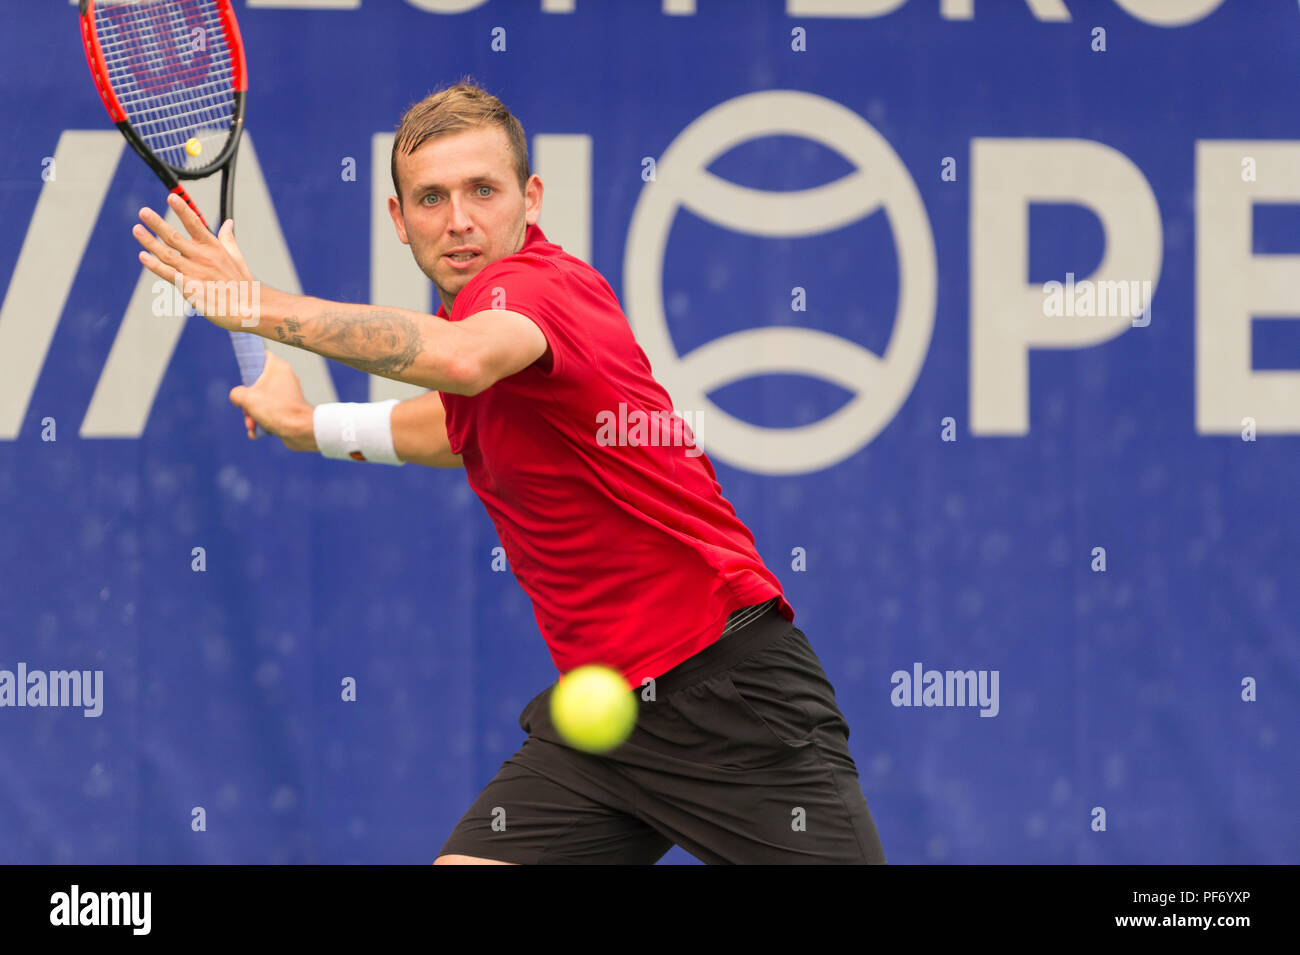 West Vancouver, Canada. 19 August 2018. Daniel Evans of Great Britain (shown here) wins the ATP Challenger Tour Mens Singles Final, against Jason Kubler of Australia. Odlum Brown VanOpen. Hollyburn Country Club.  © Gerry Rousseau/Alamy Live News - Stock Image